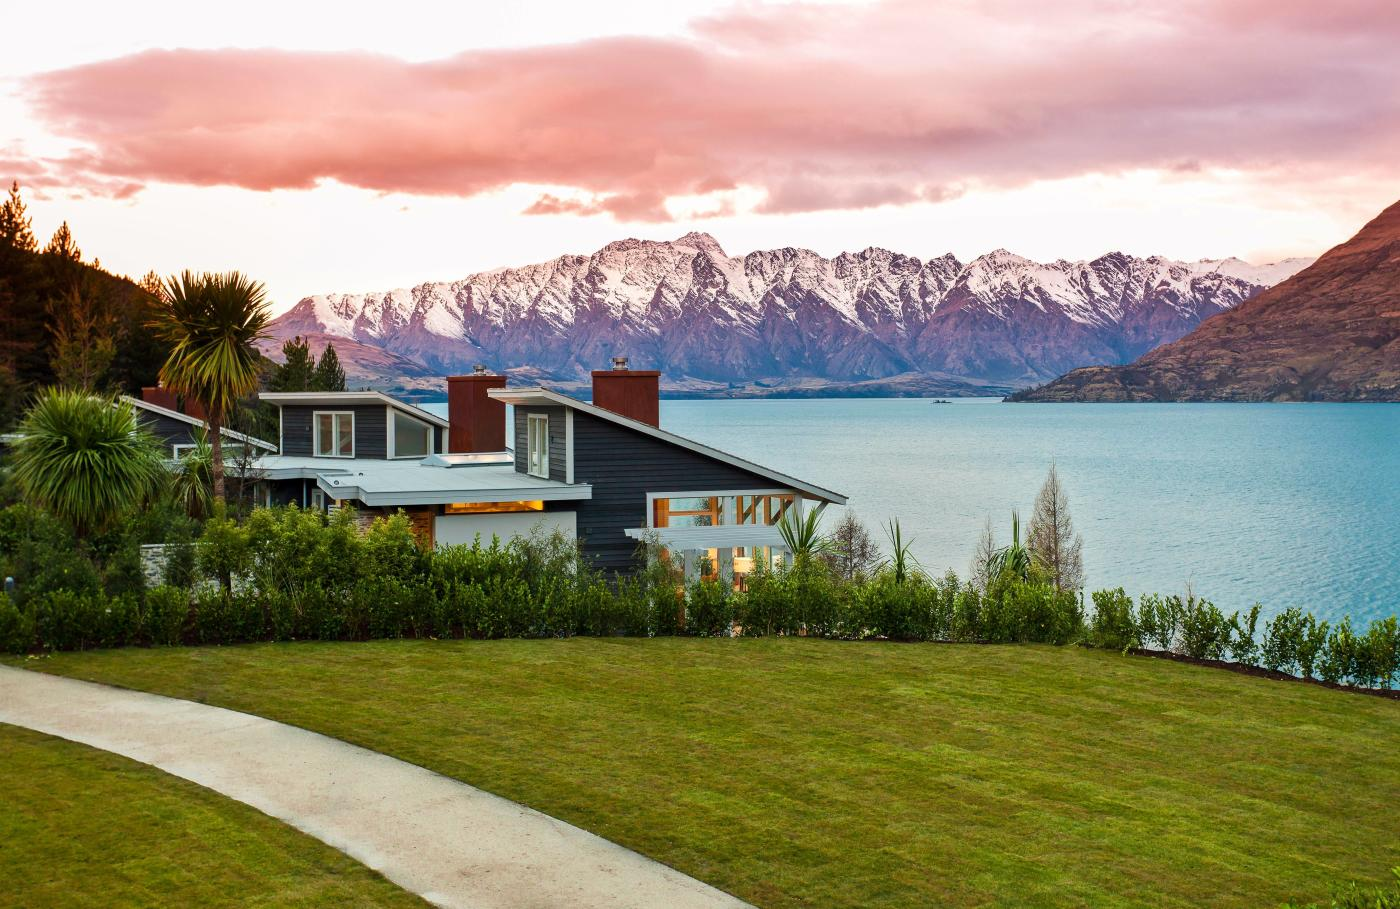 Matakauri Lodge with mountains in the background